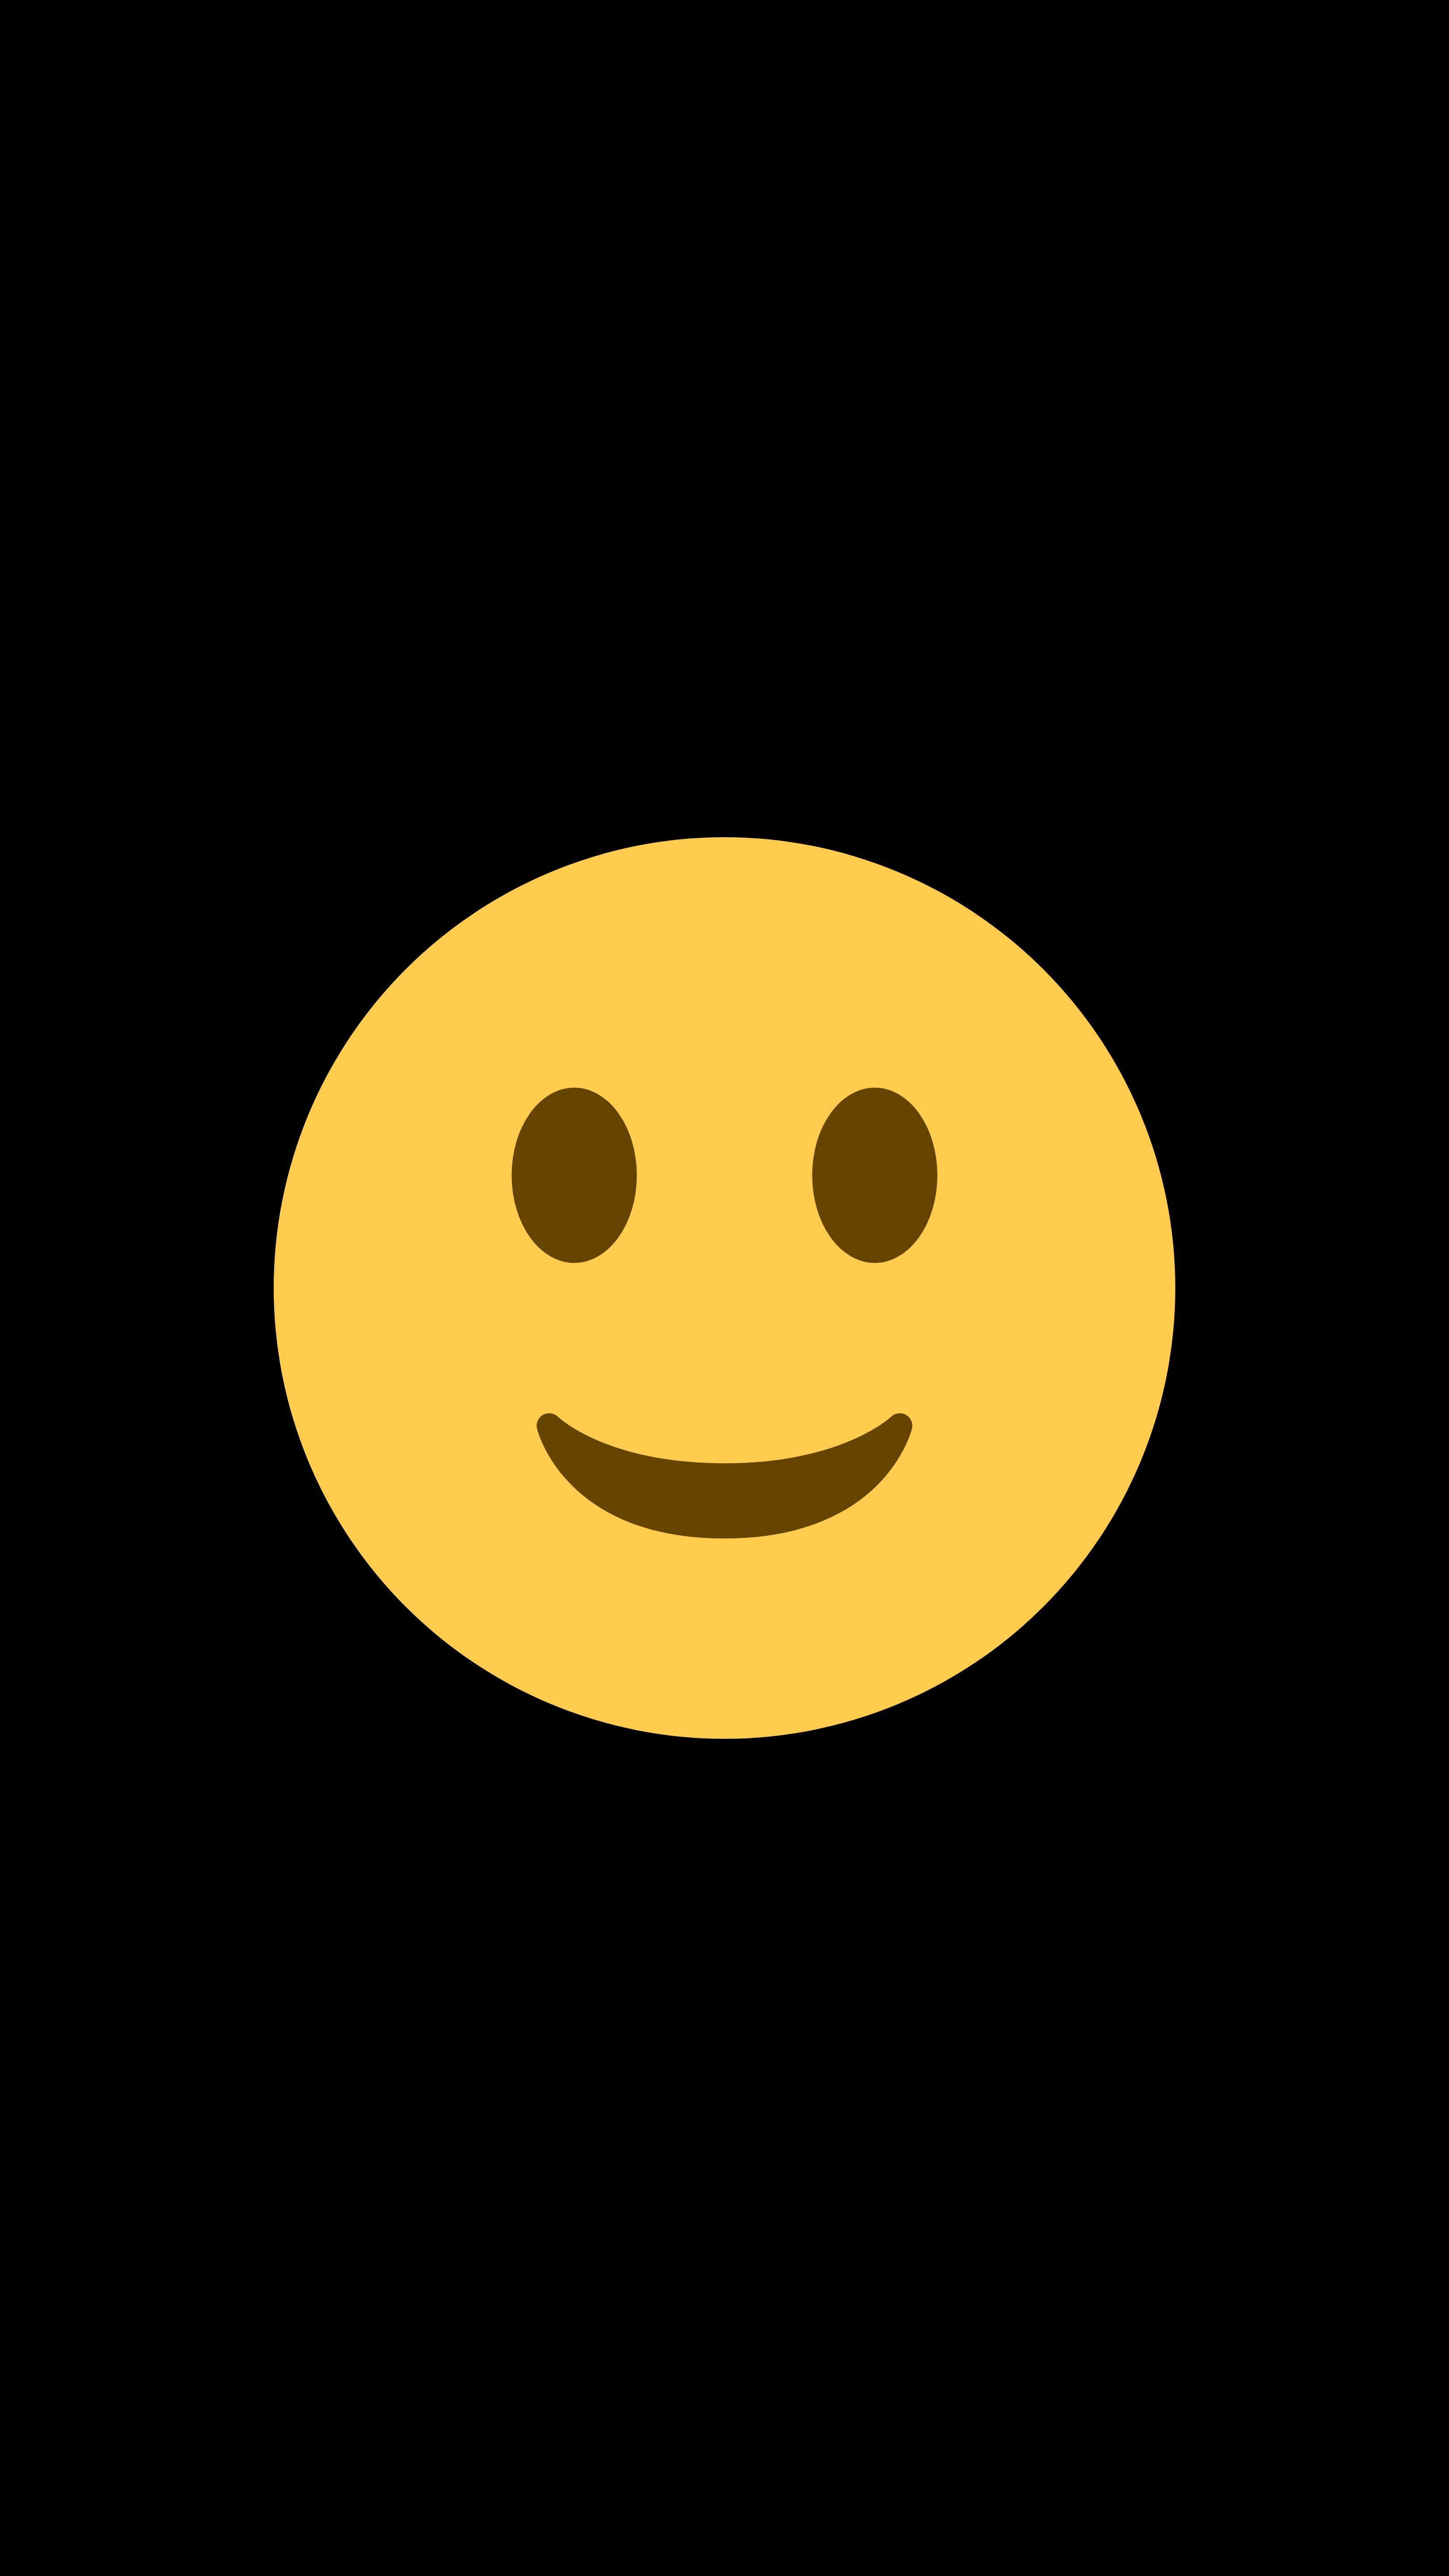 51826 Screensavers and Wallpapers Smile for phone. Download Smile, Smiley, Art, Vector, Emoticon pictures for free